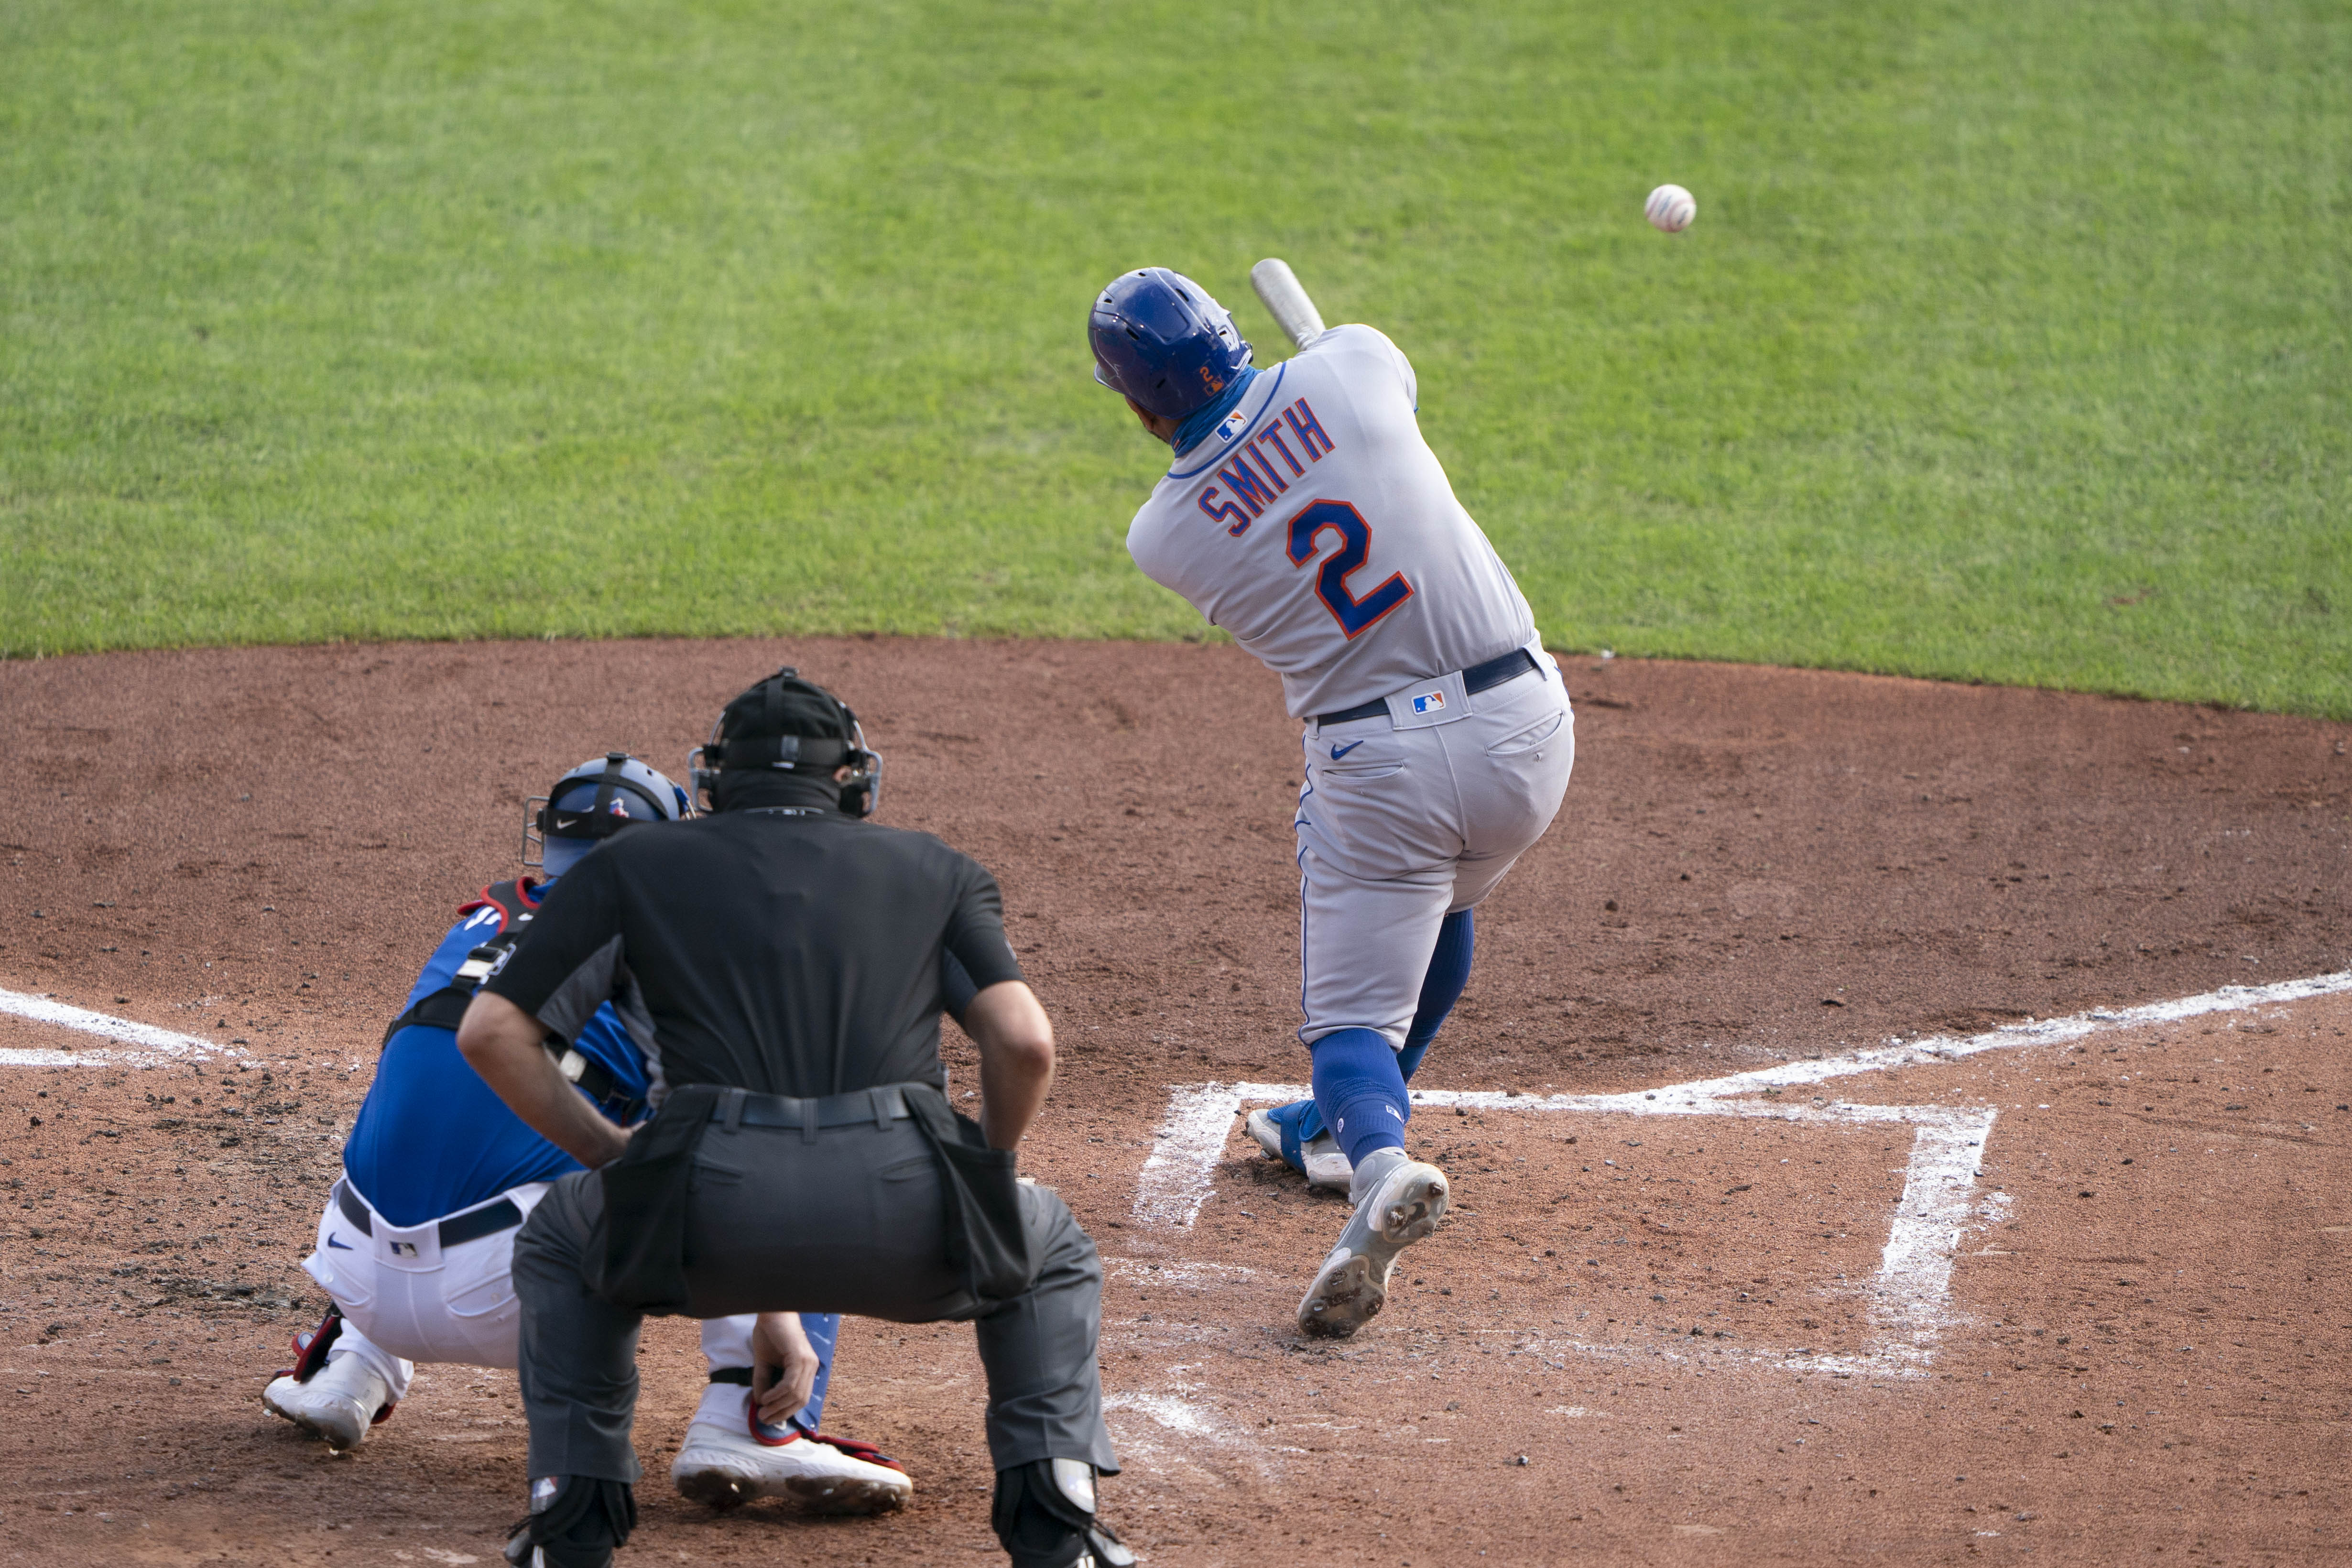 The New York Mets' path to the playoffs